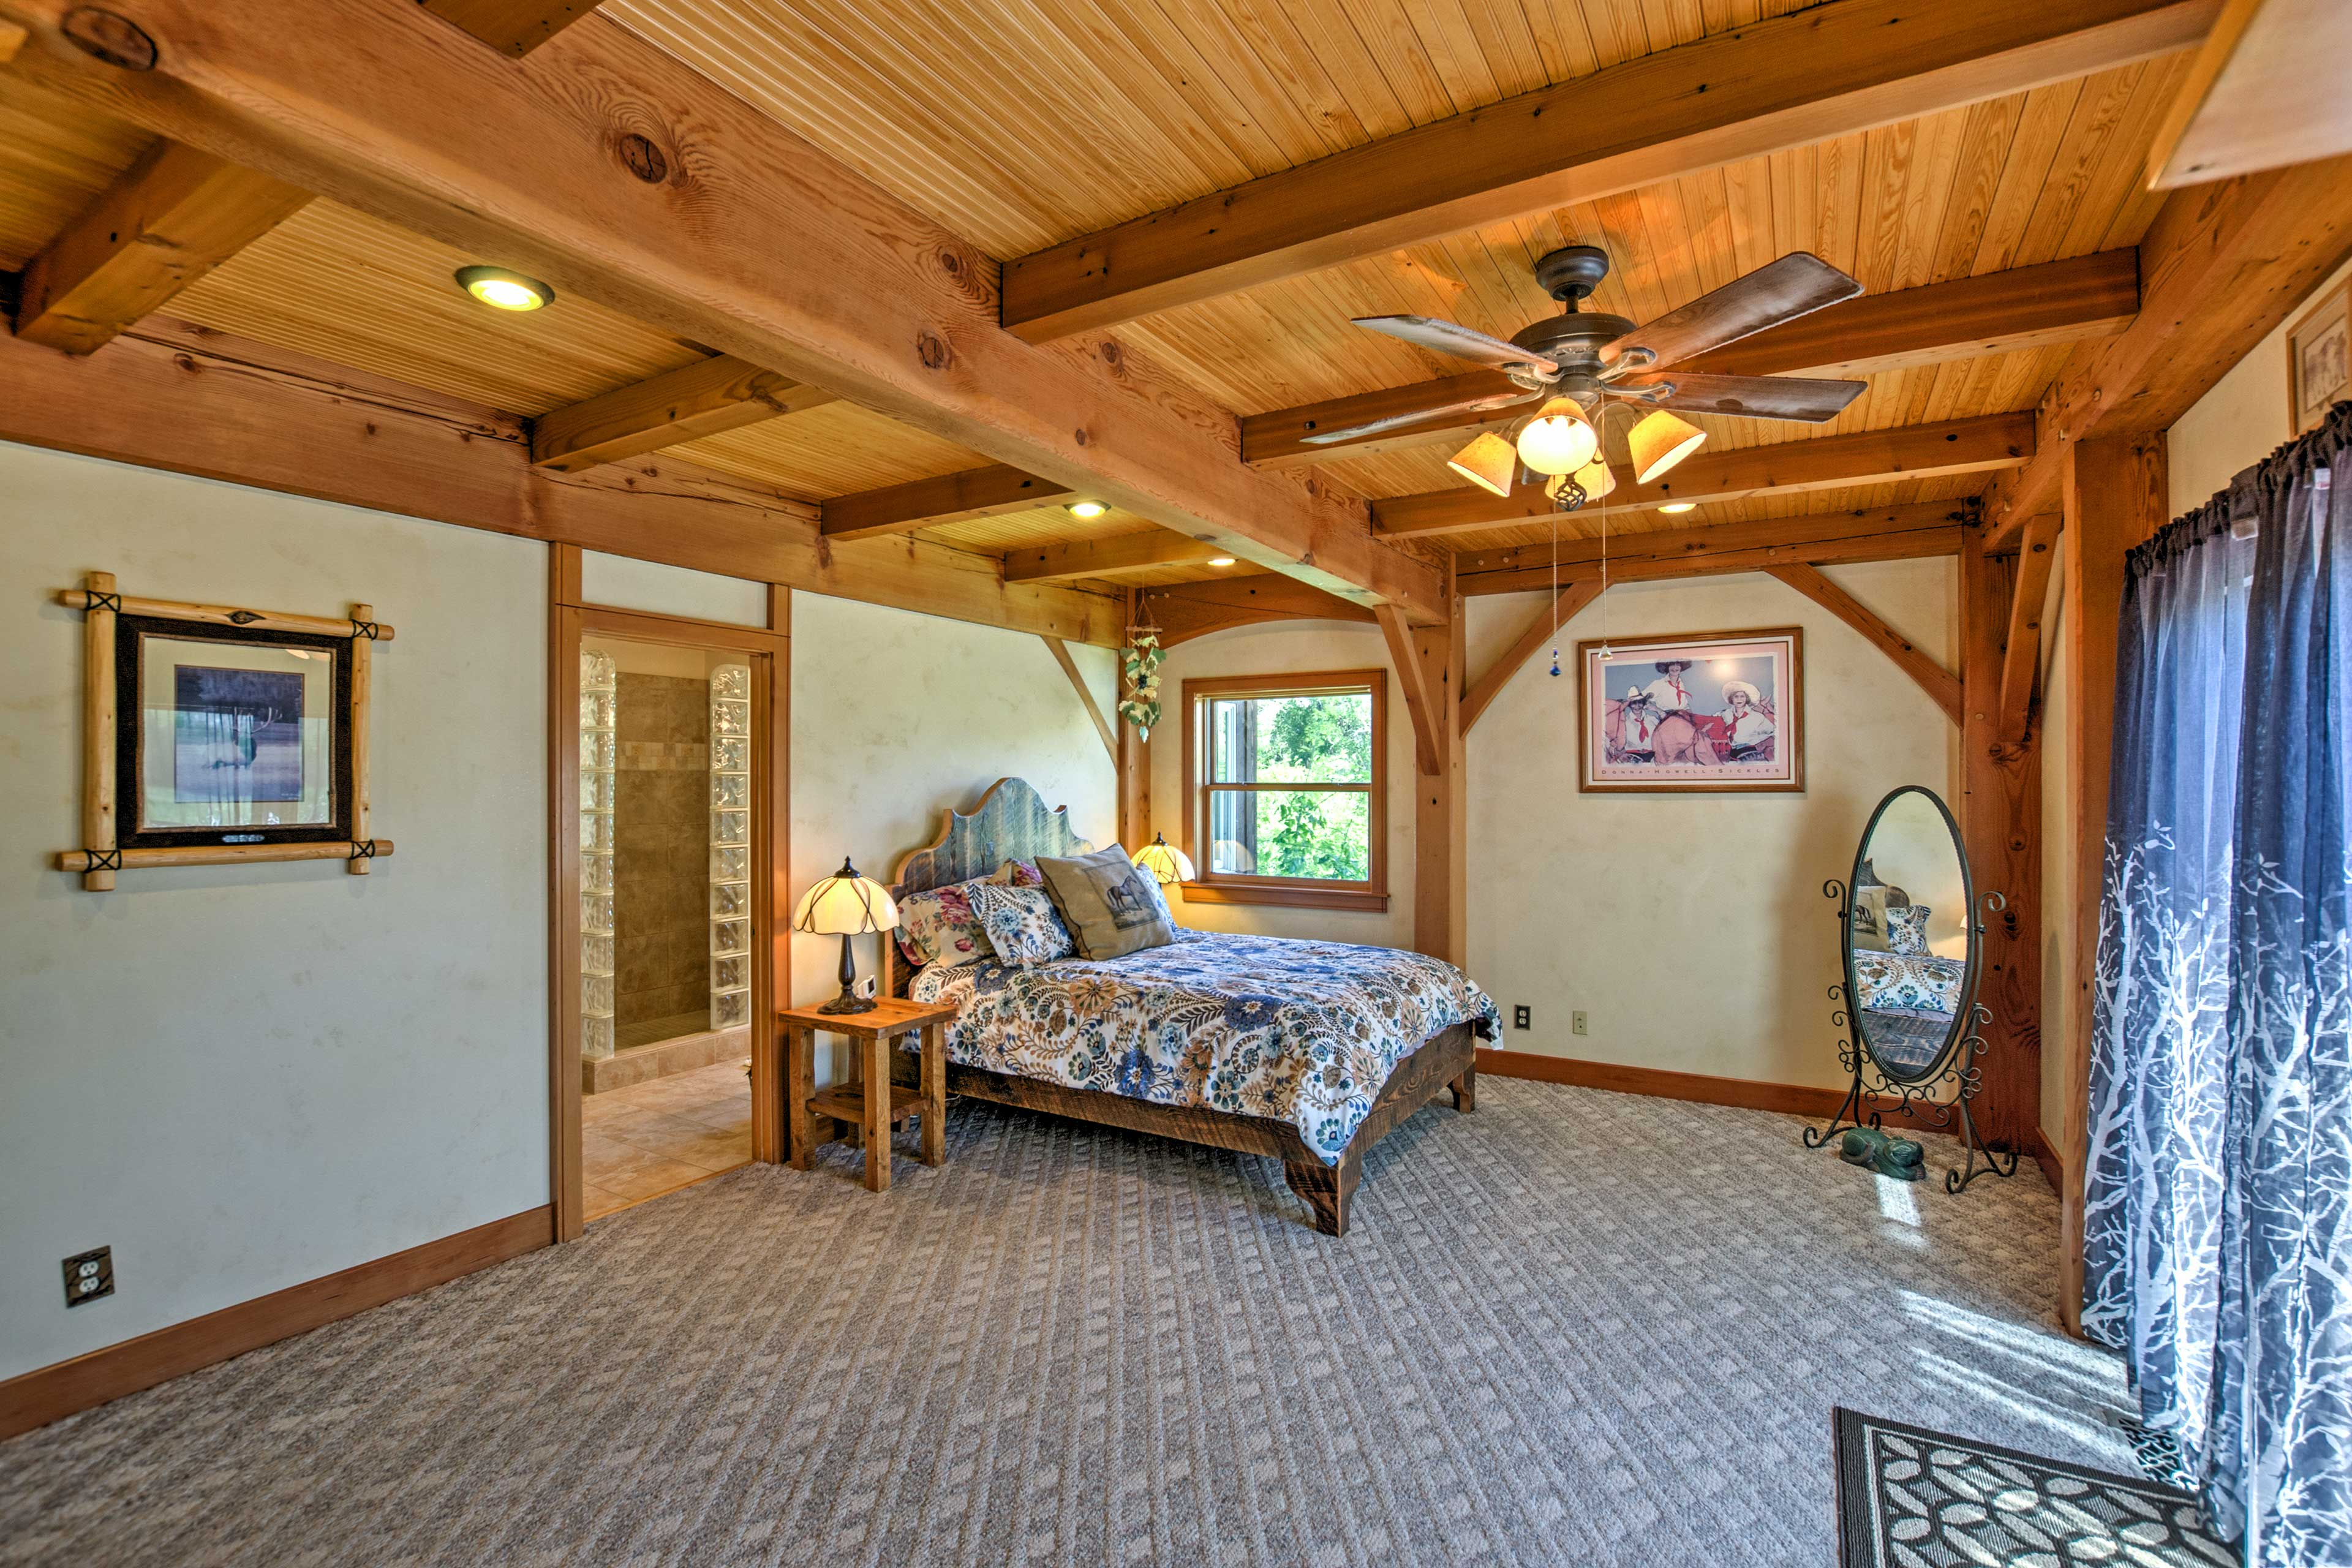 The master bedroom boasts a plush queen bed and an en-suite bathroom.